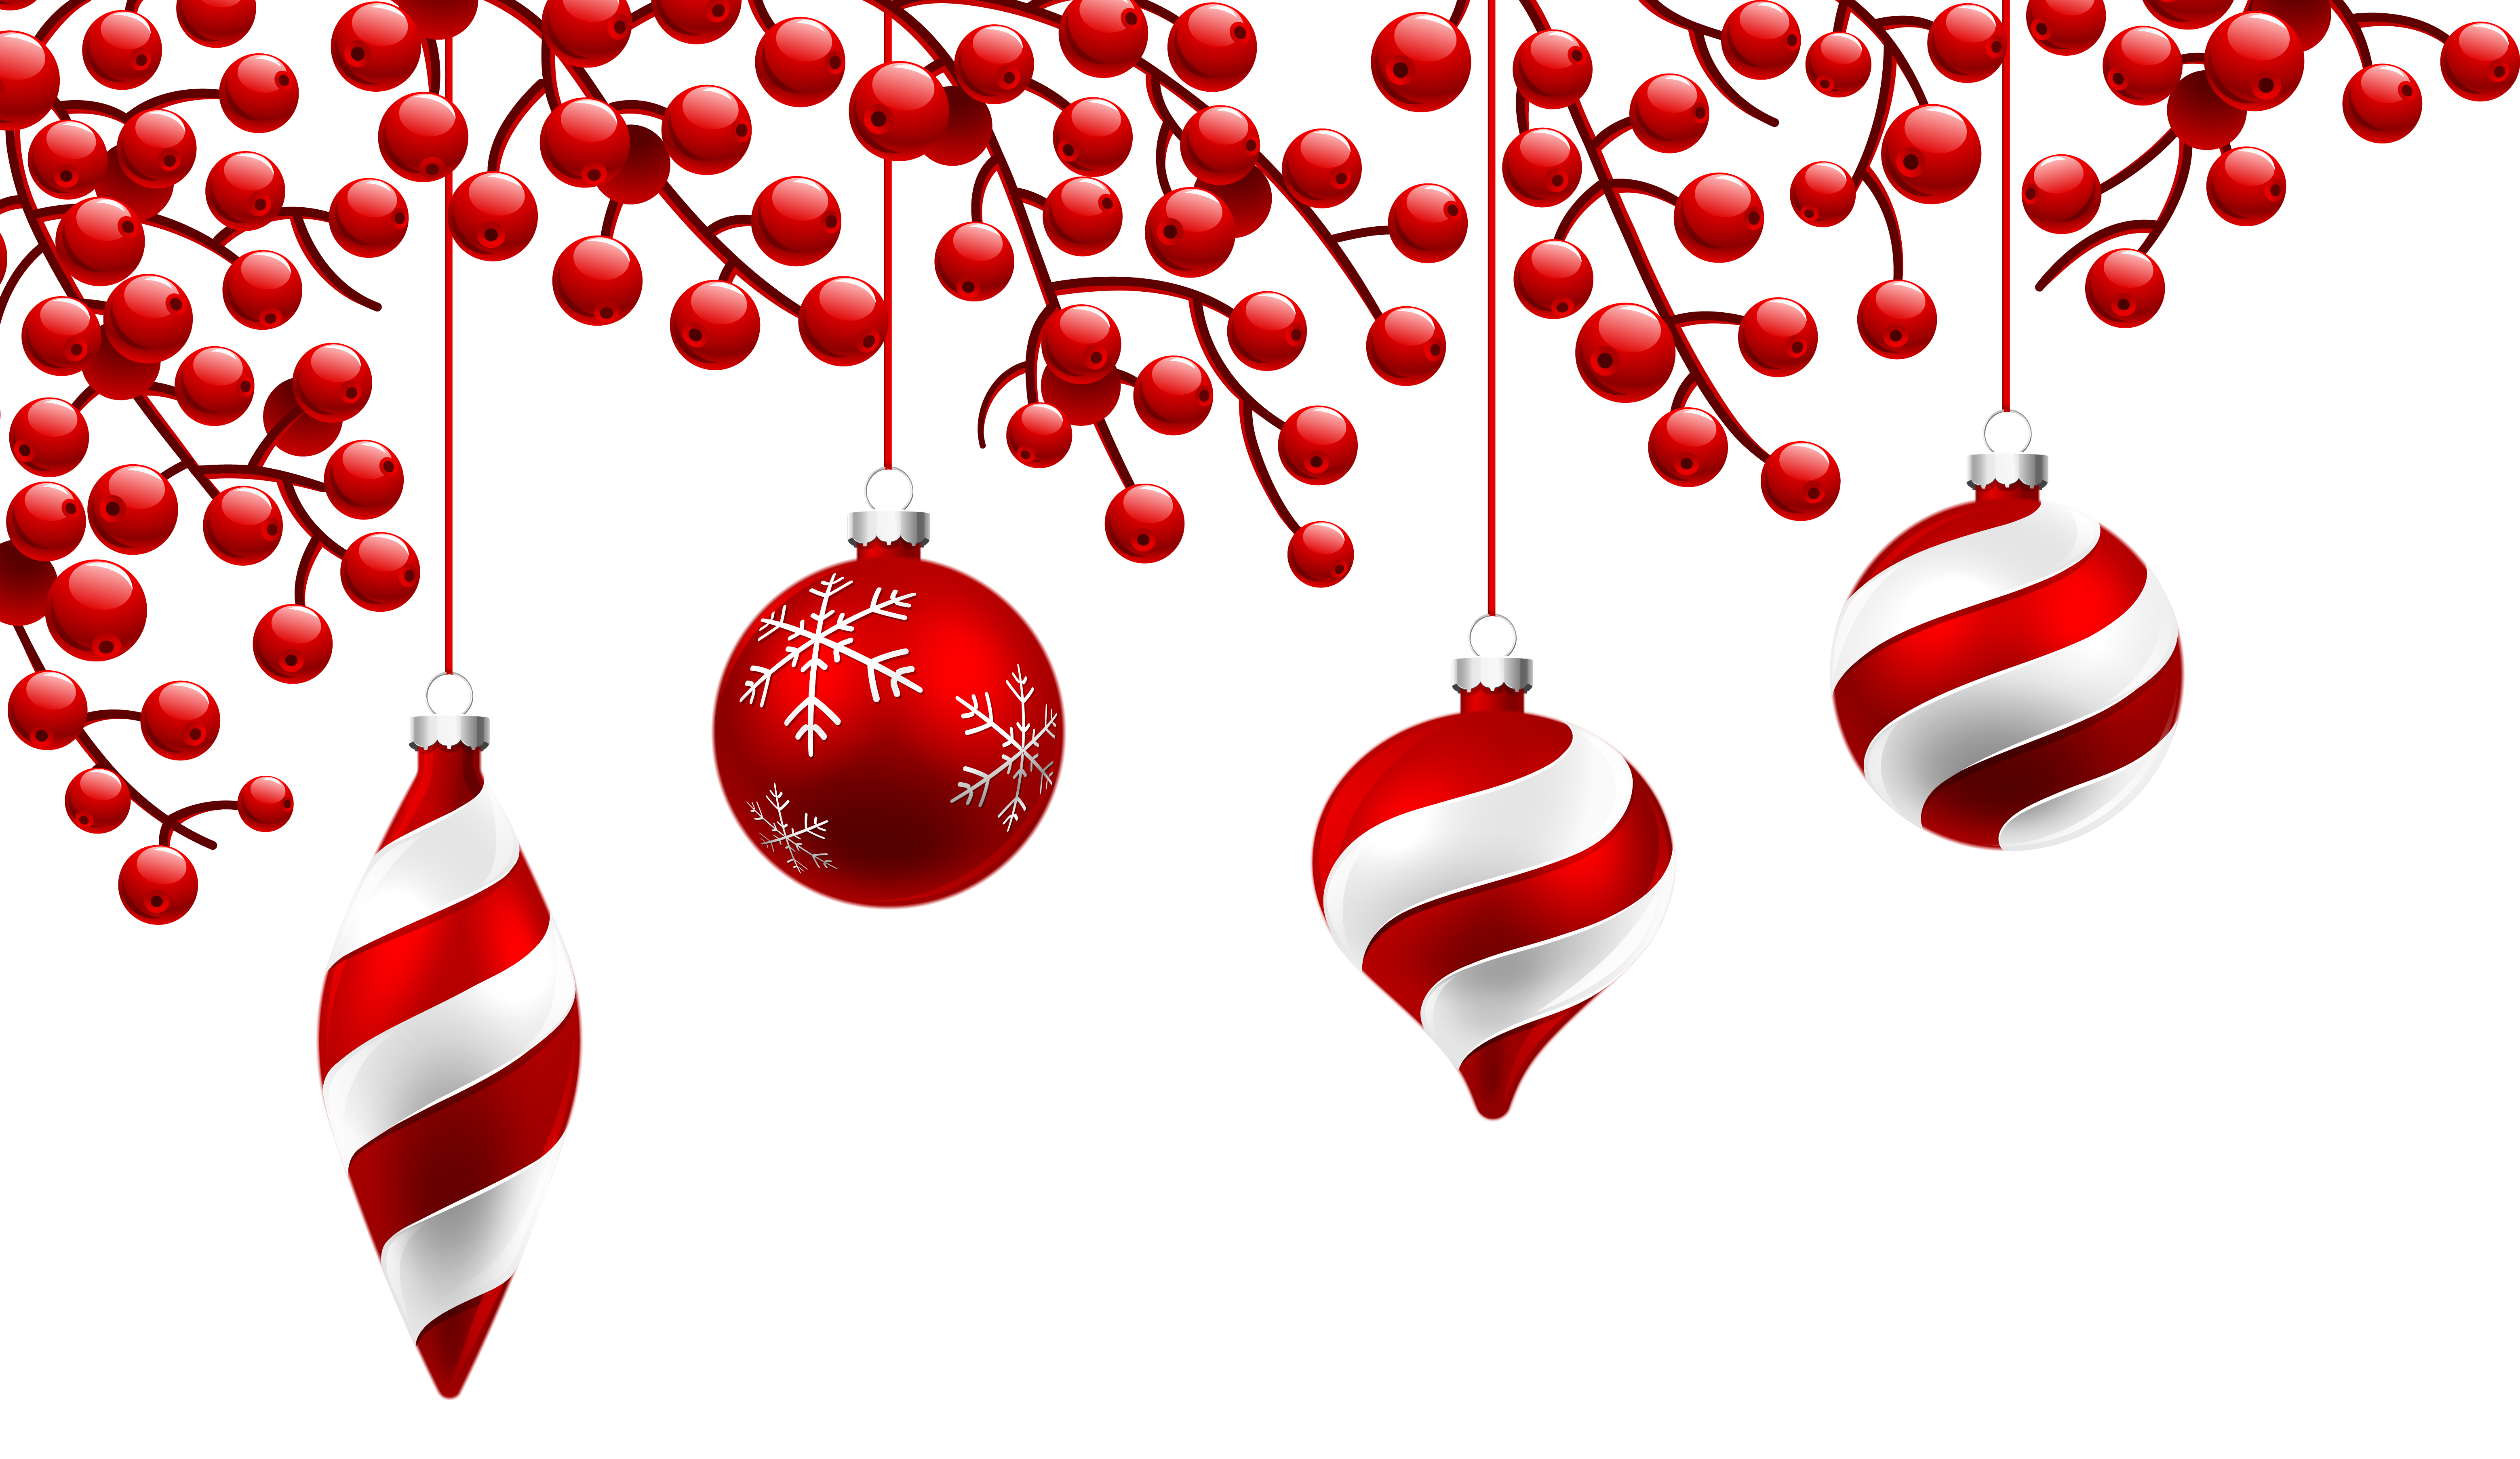 Red Christmas Decoration PNG Clipart Image.